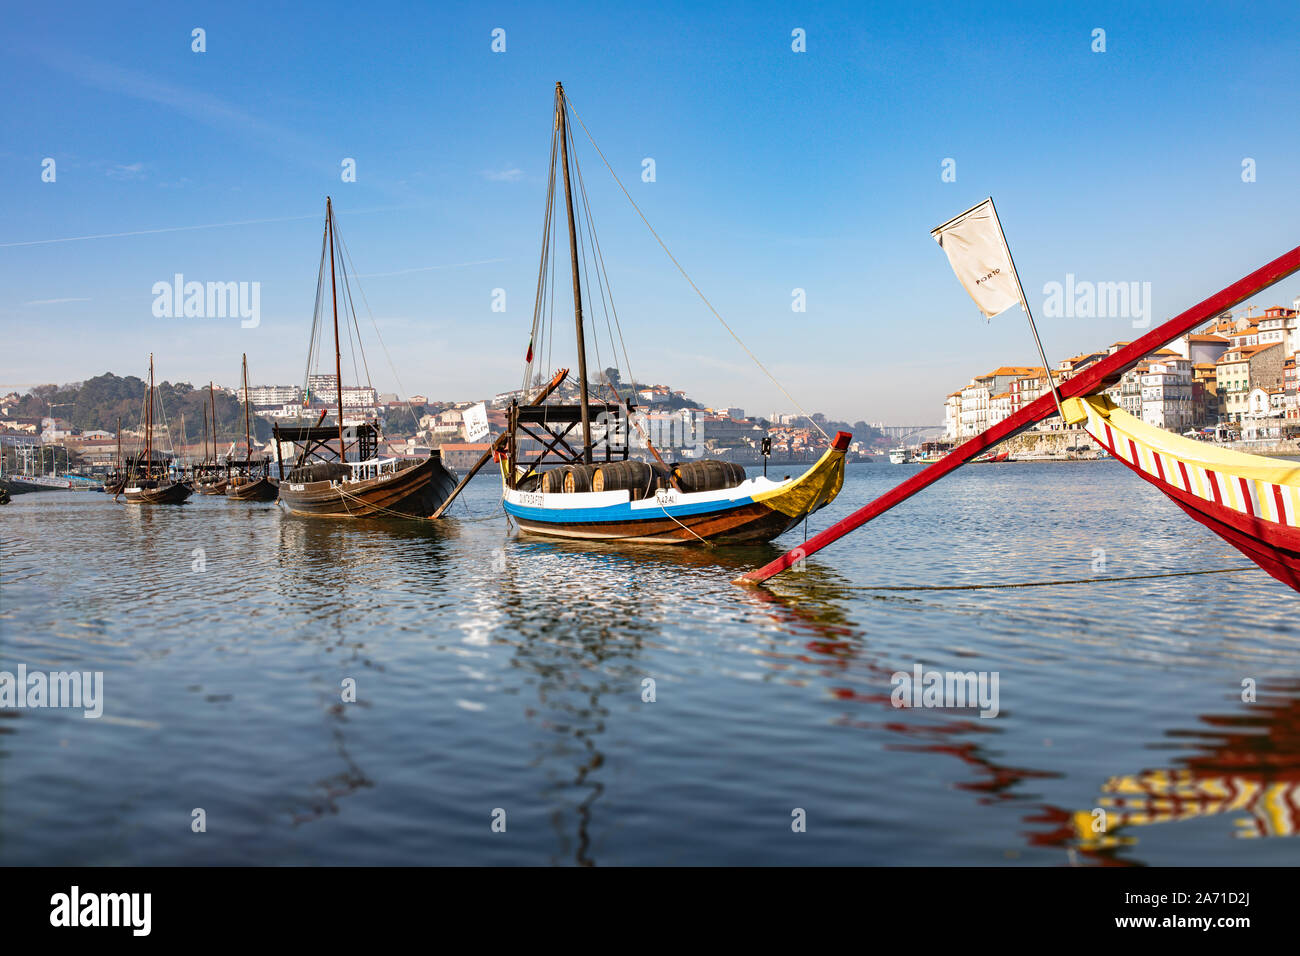 Traditional ships, wine transport on river Douro. Porto, Portugal Stock Photo